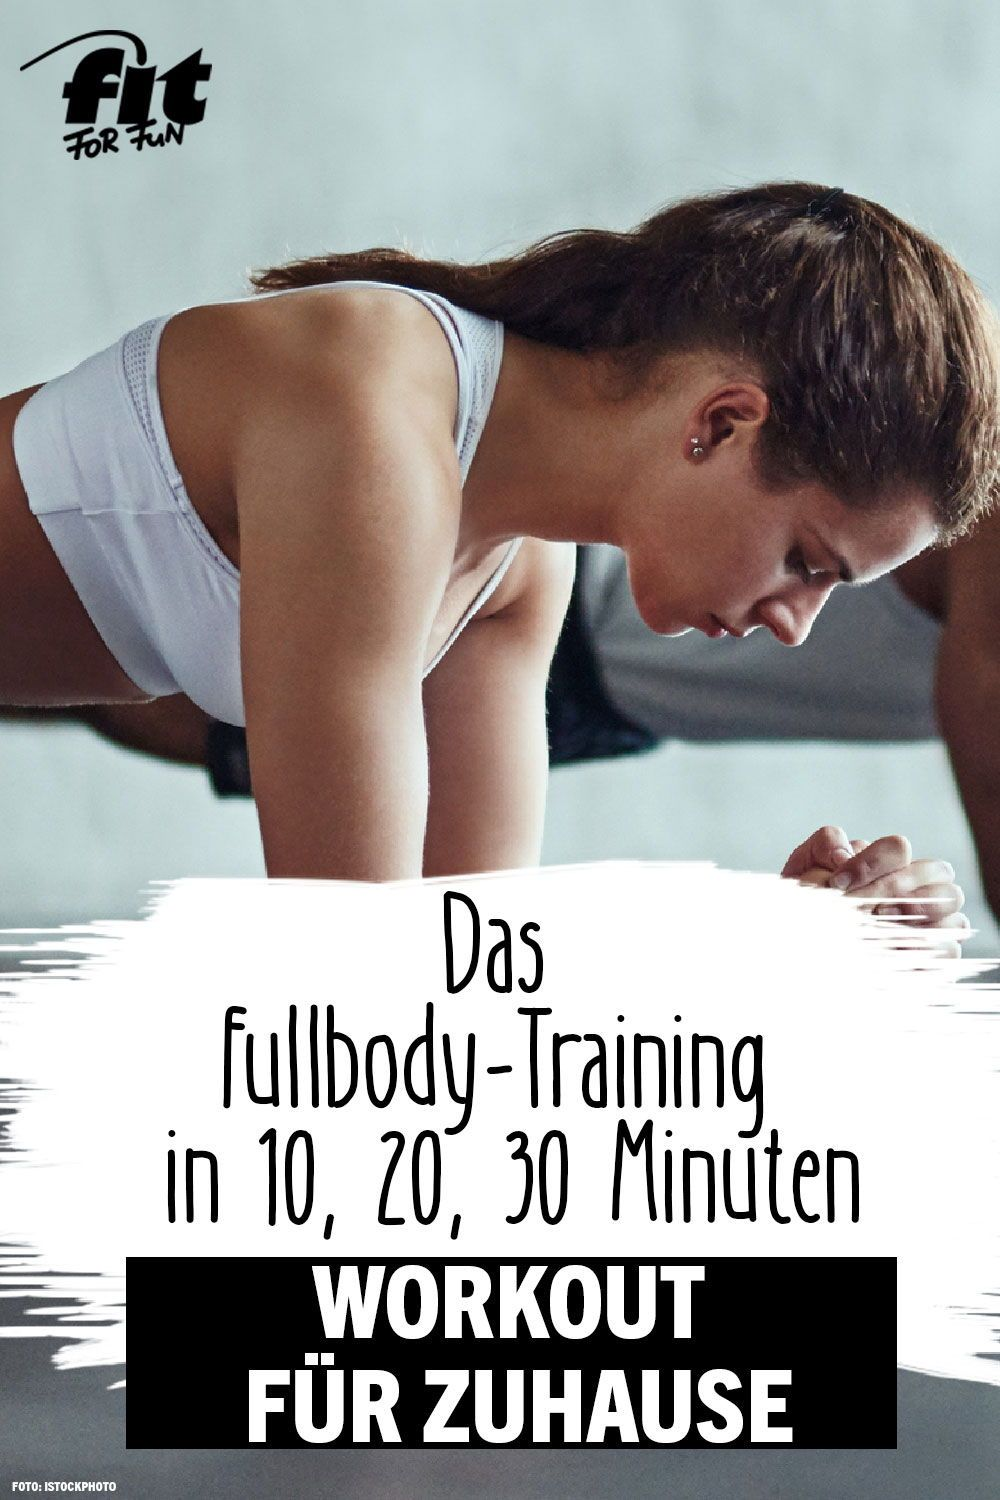 Workout zuhause: Trainingsplan für 10, 20 oder 30 Minuten #quickfitness